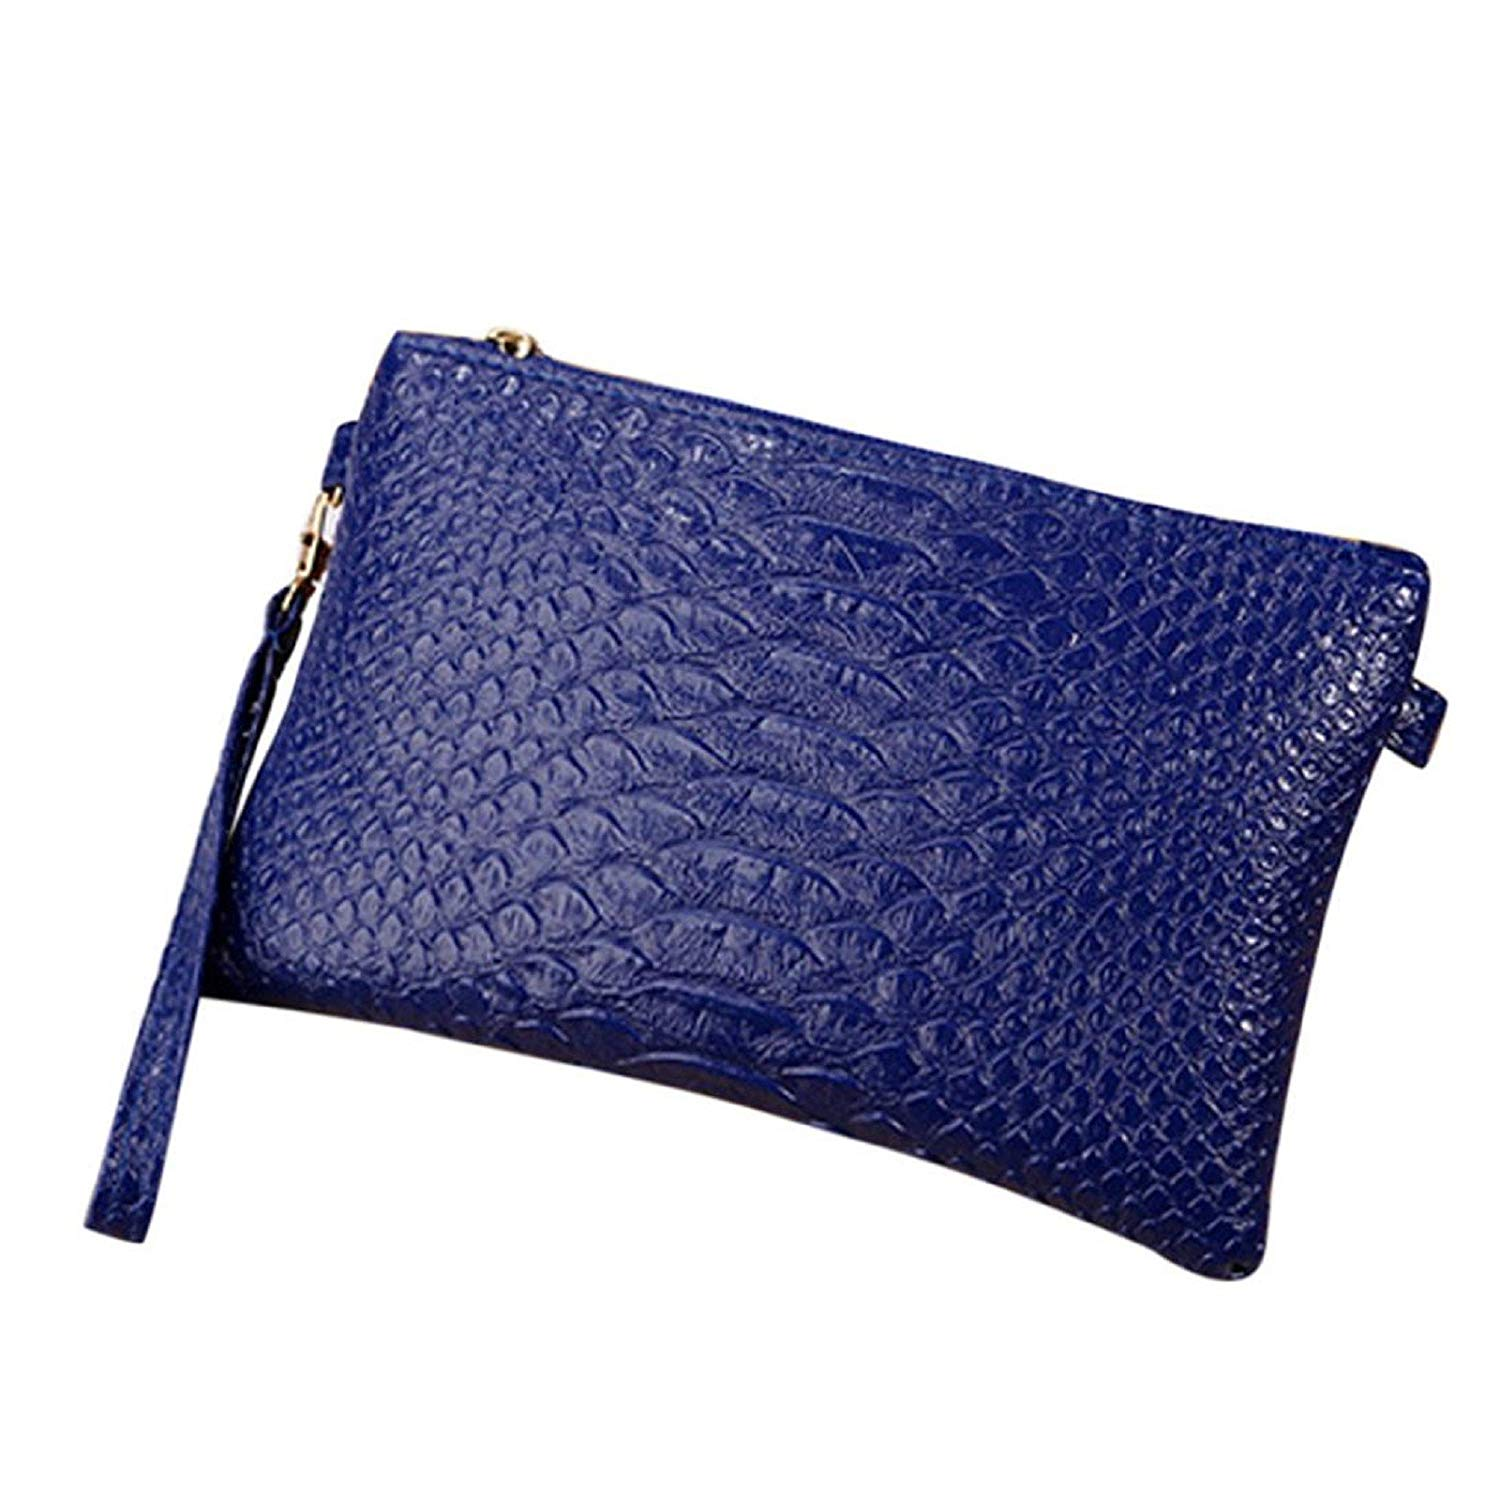 Owill Fashion Women Ladies Snake Striped Leather Handbag Messenger Bags Coin Phone Bag Clutch Bag